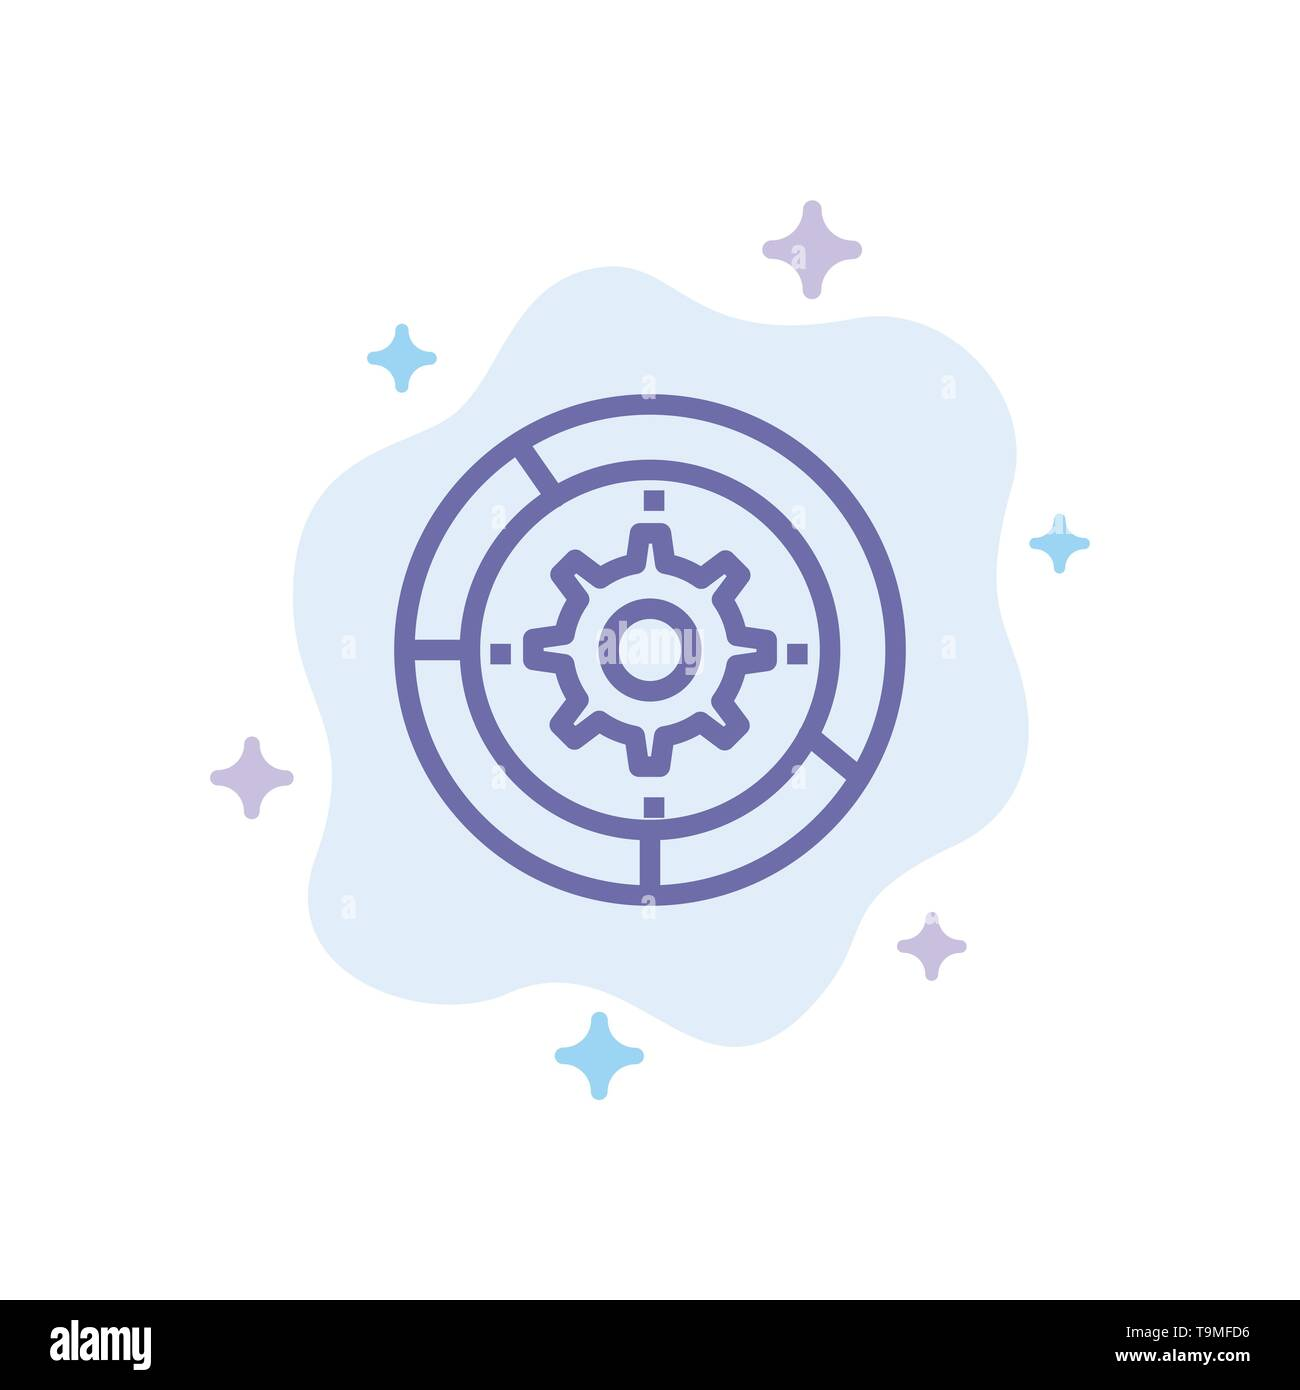 Gear, Settings, Setup, Engine, Process Blue Icon on Abstract Cloud Background - Stock Image